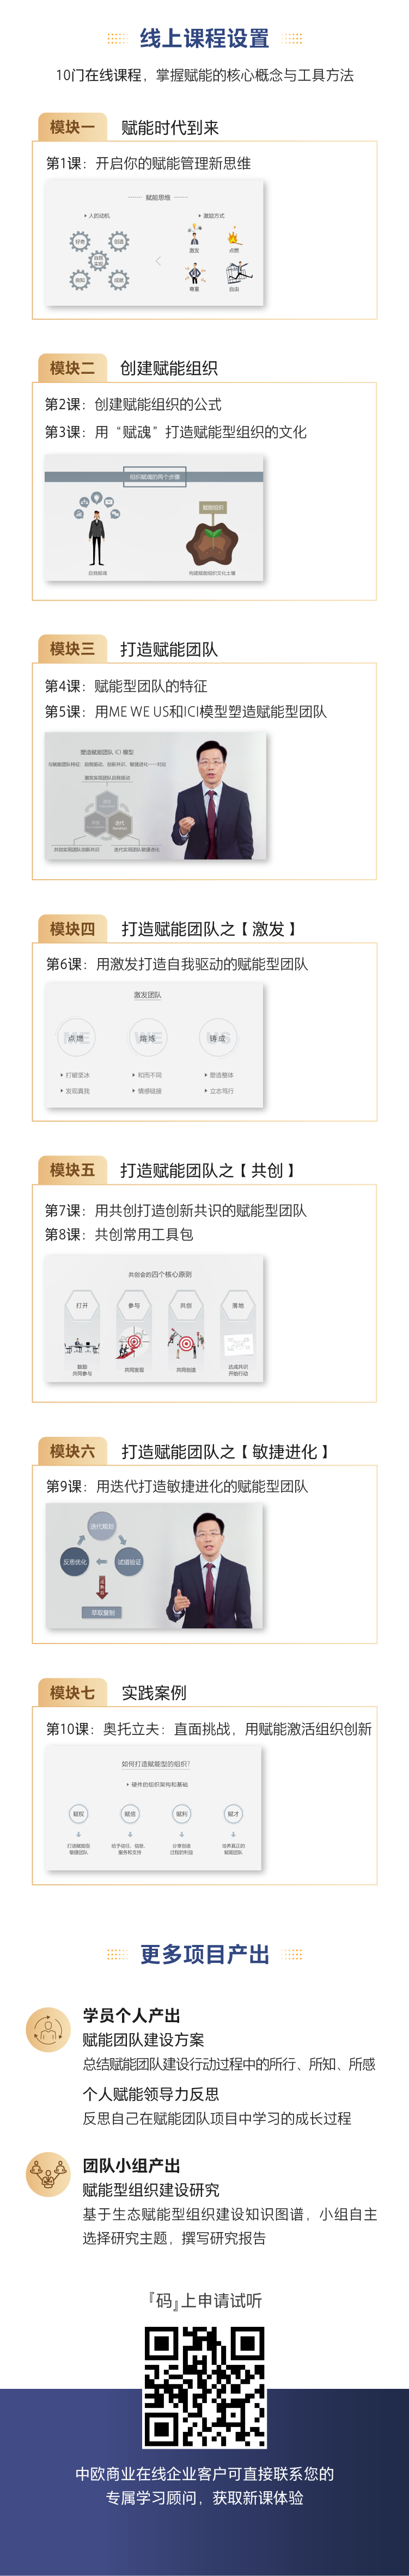 FIN-新课发布-1209-05.png